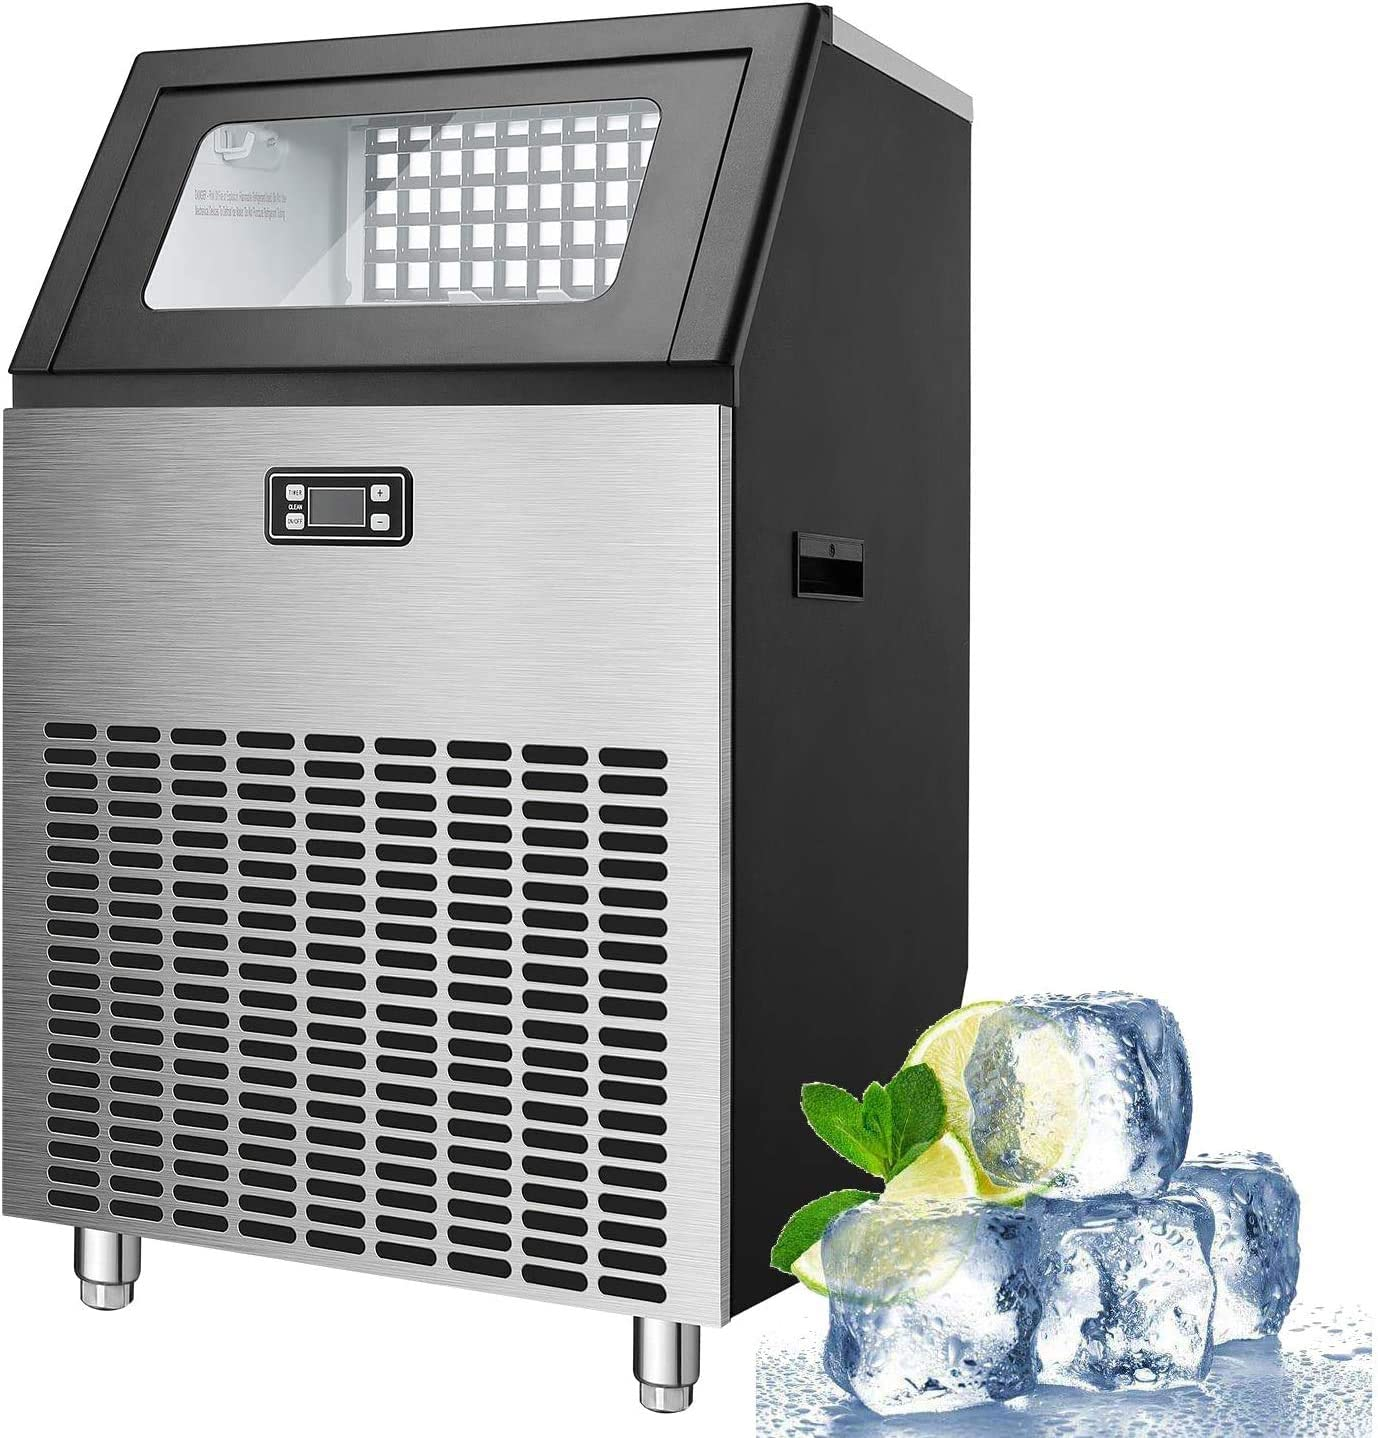 WUAZ Commercial Ice Makes Machine Stainless Steel Makes 200 Lbs of Ice Per 24H with 48 Pounds Storage Capacity Ice Cubes Freestanding Party/Bar/Connection Hose